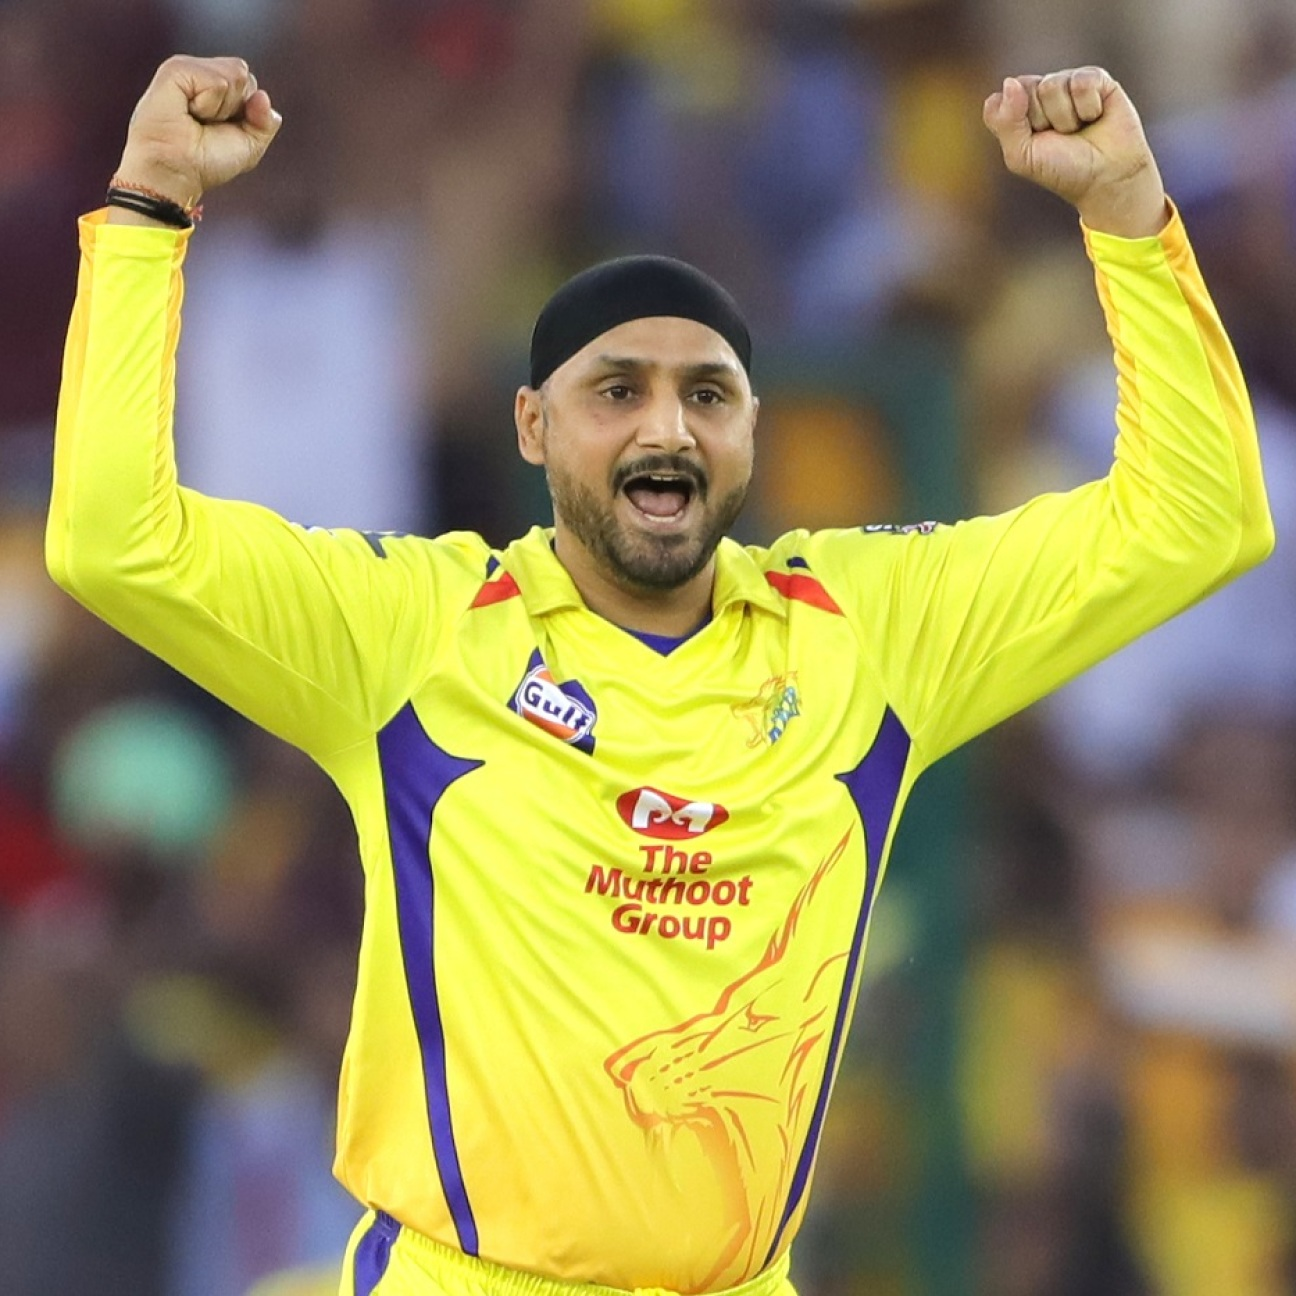 Harbhajan Singh profile and biography, stats, records, averages, photos and  videos